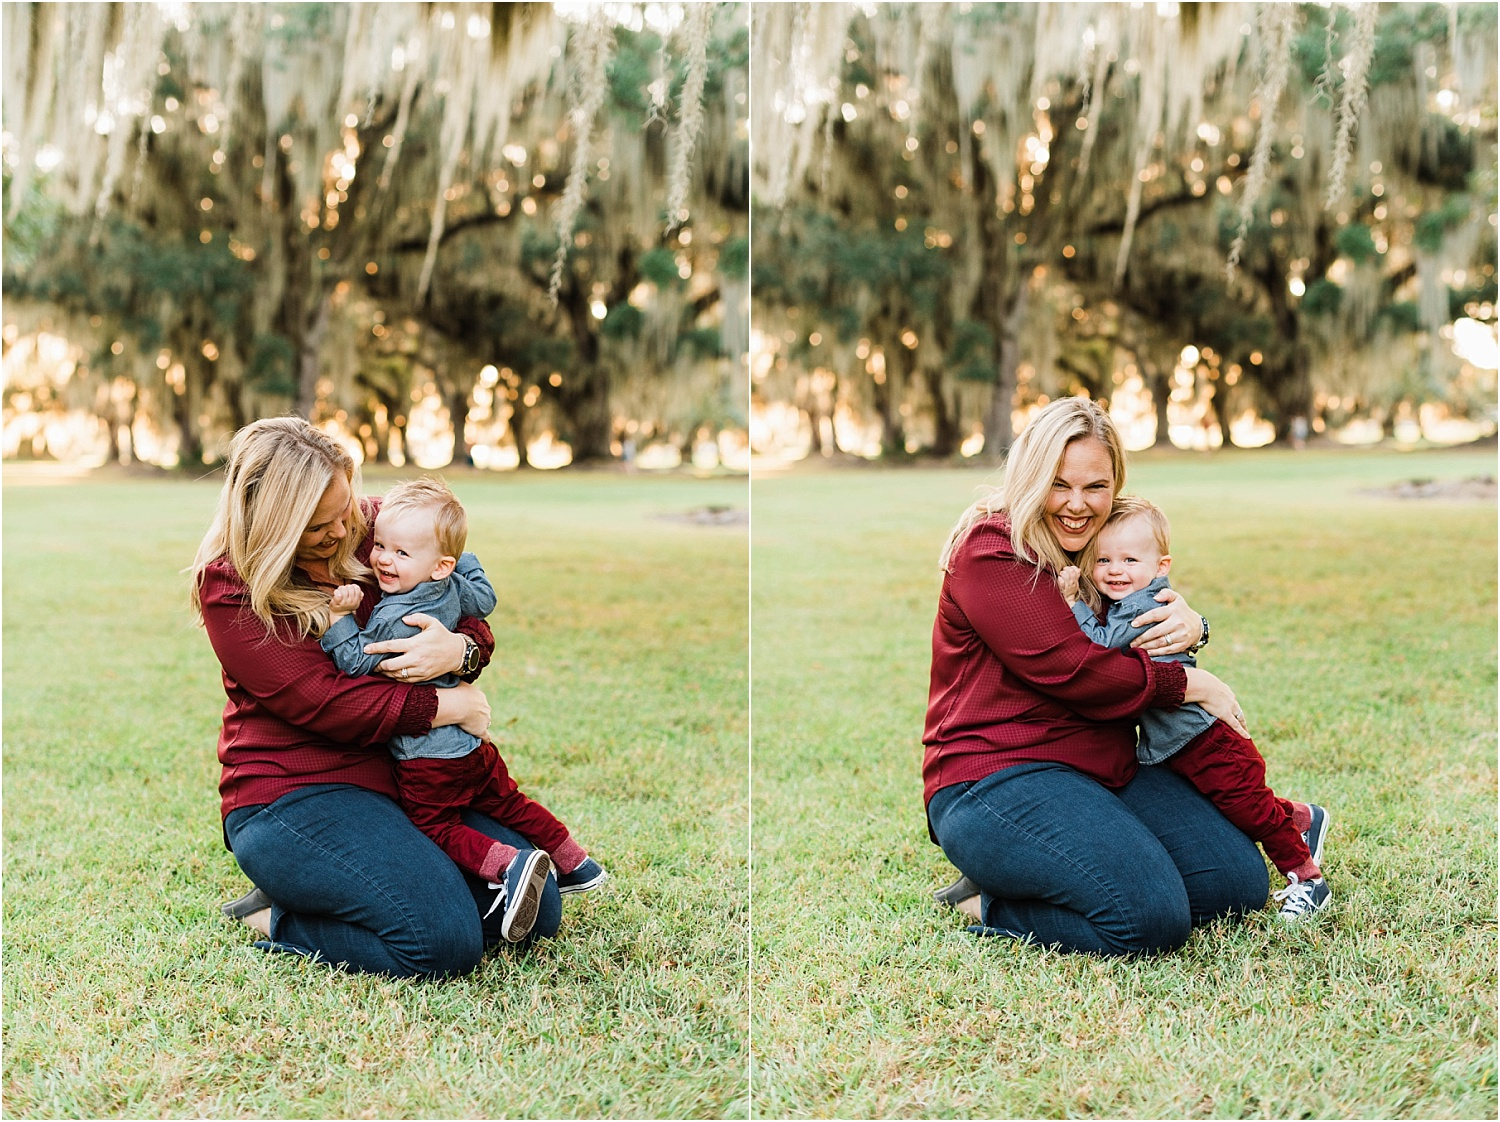 Smalley Family Fall 2019-Fountainbleau-State-Park-Family-Photos_Gabby Chapin Photography_0045_BLOG.jpg